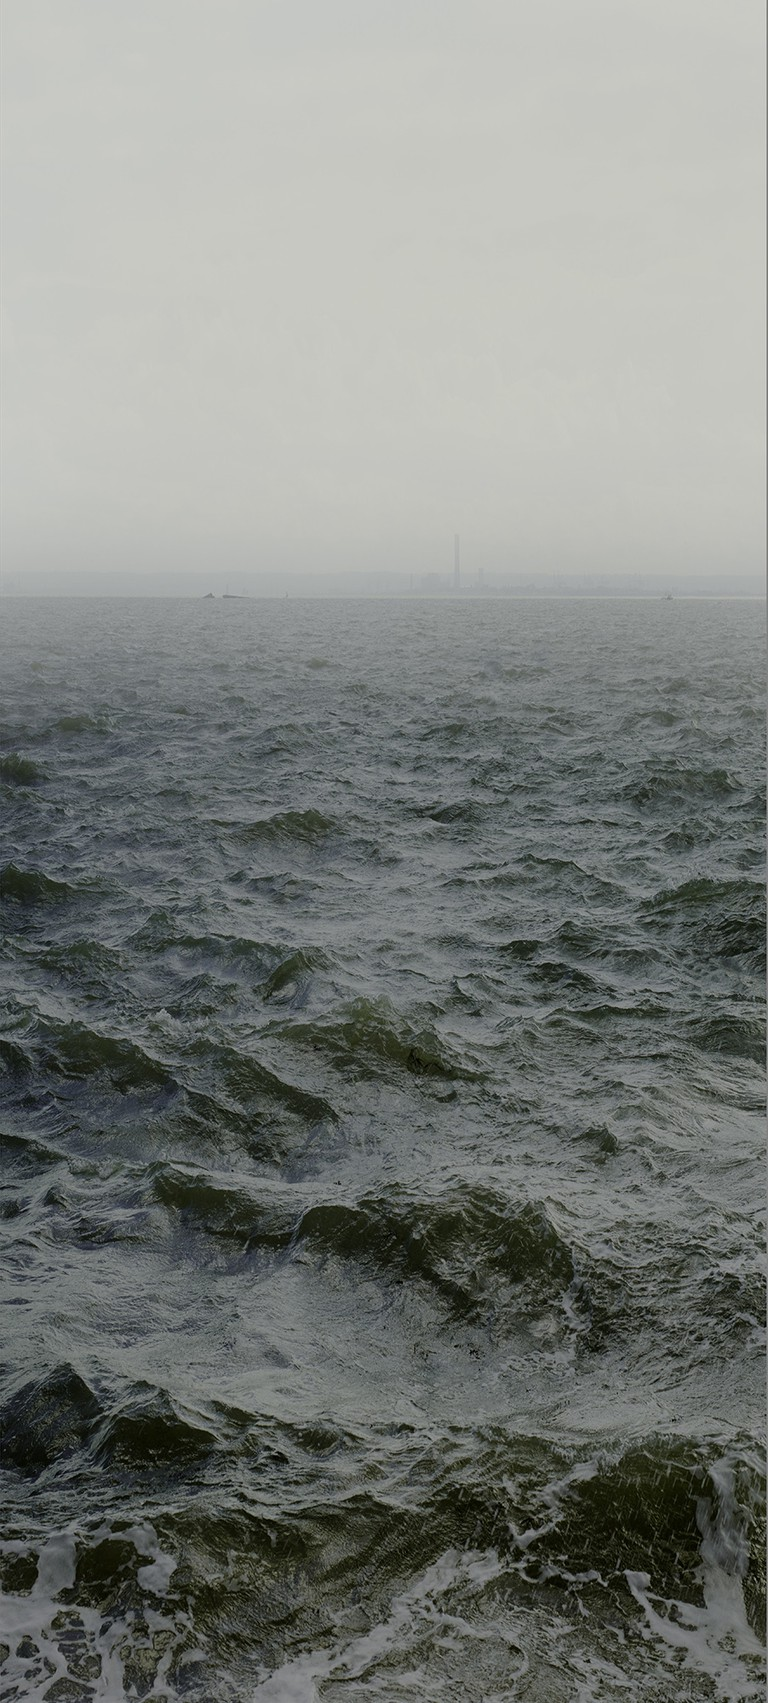 Water XVIII, (Shoeburyness towards Mulberry Defenses and on to Grain Power Station), England, 2015